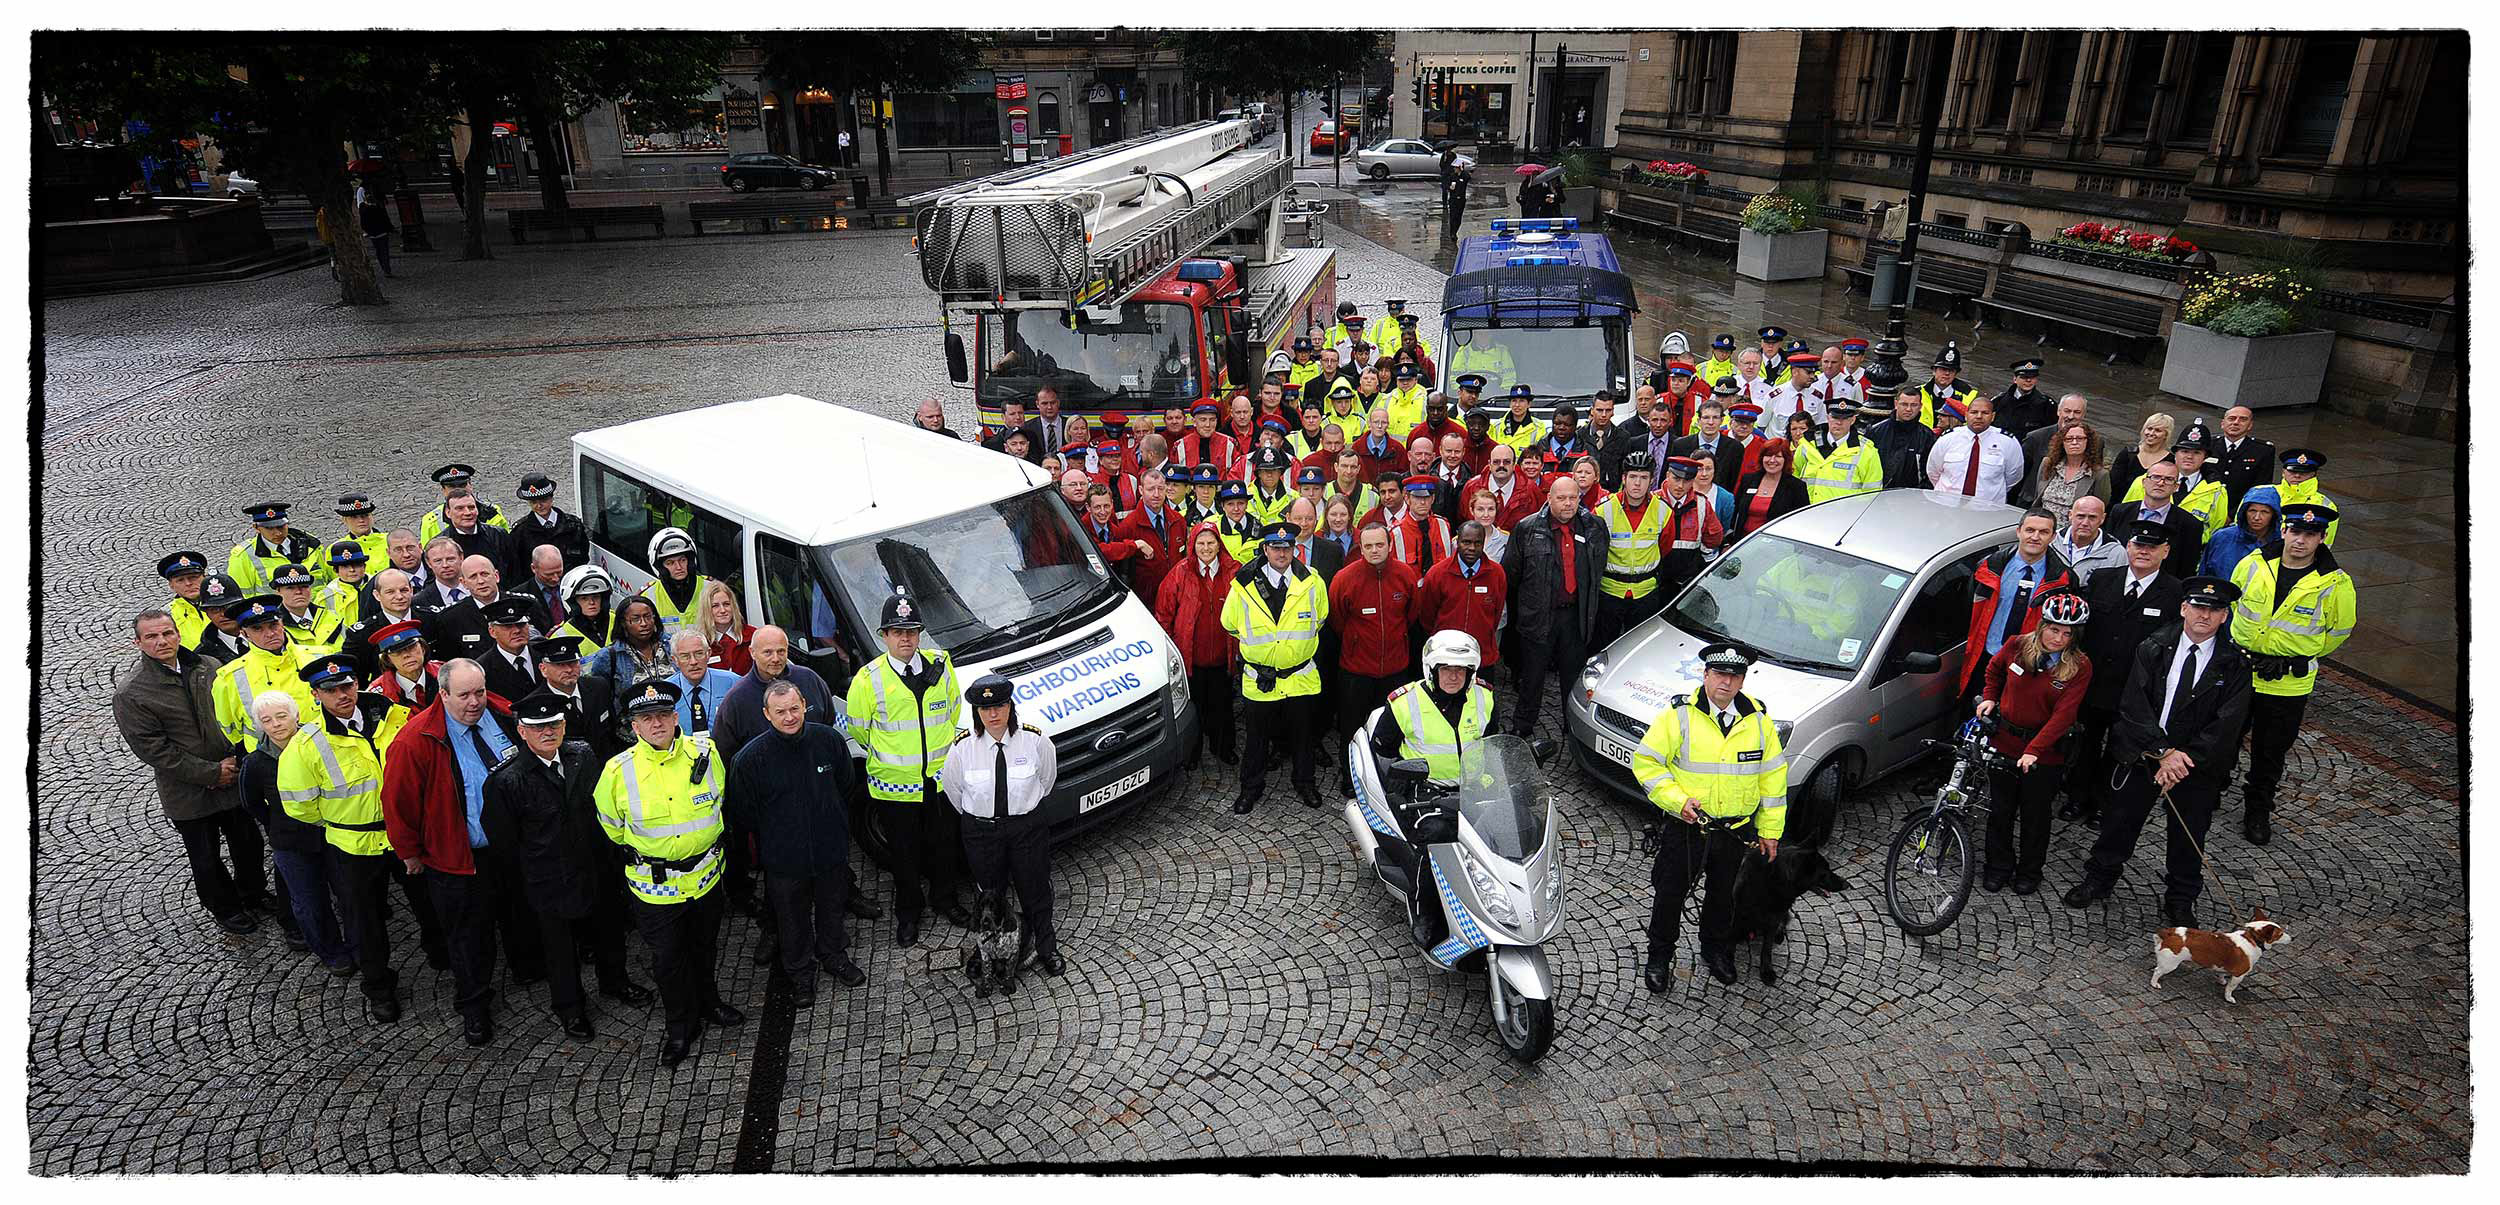 Members of the police, fire, ambulance and rescue services pose for a photograph at Manchester Town Hall. Manchester City Council Photography by Manchester photographer .com